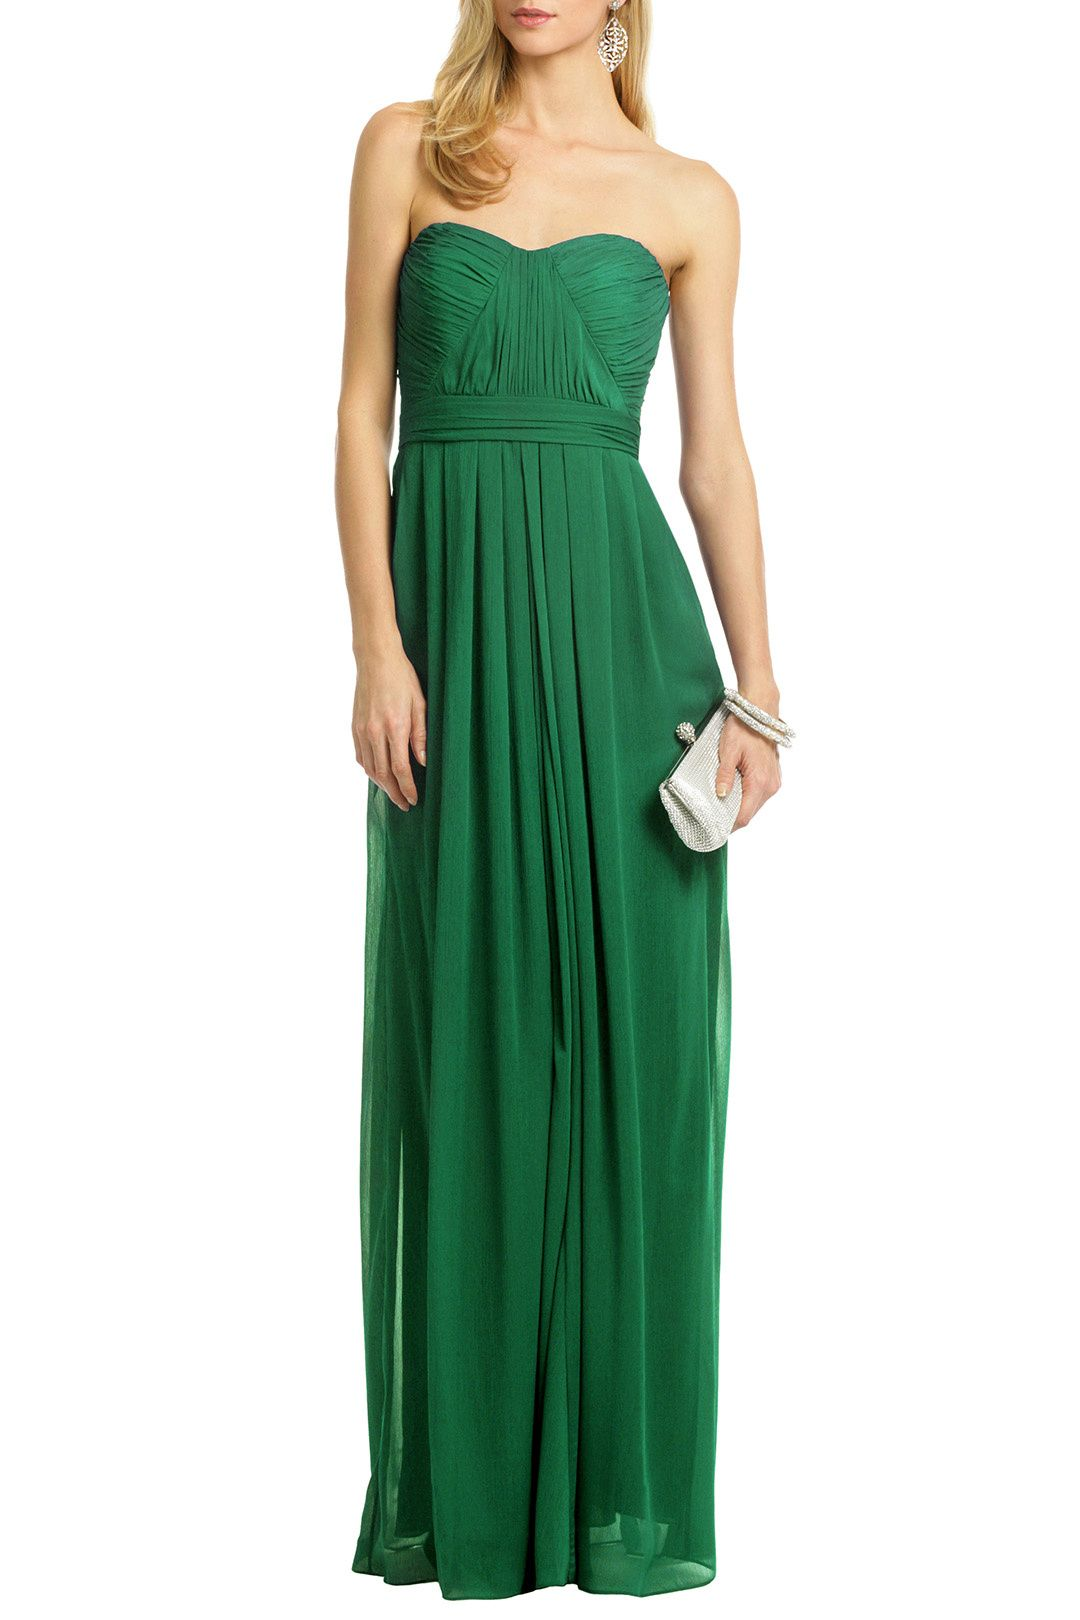 Green with Envy! Flora Chiffon Gown by Badgley Mischka for $70 ...